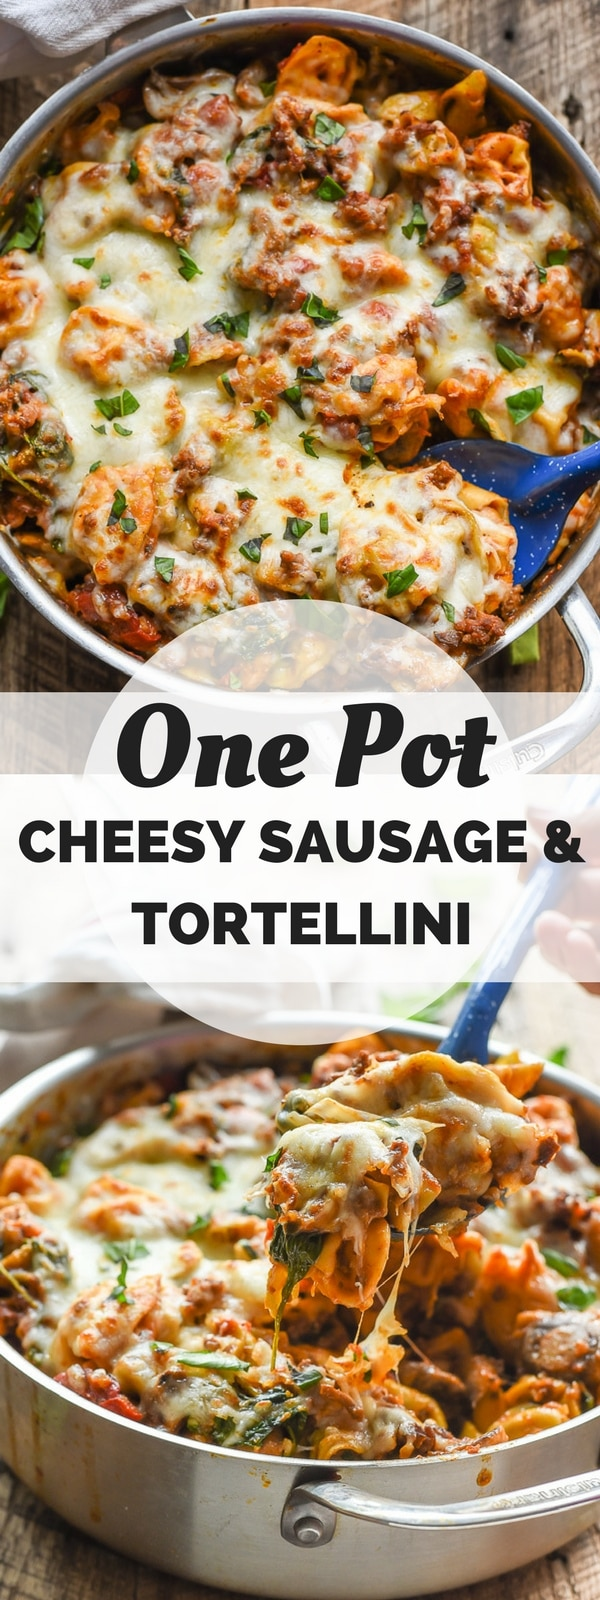 This Cheesy One Pot Tortellini with Italian Sausage and Veggies is a quick weeknight meal that everyone will love!